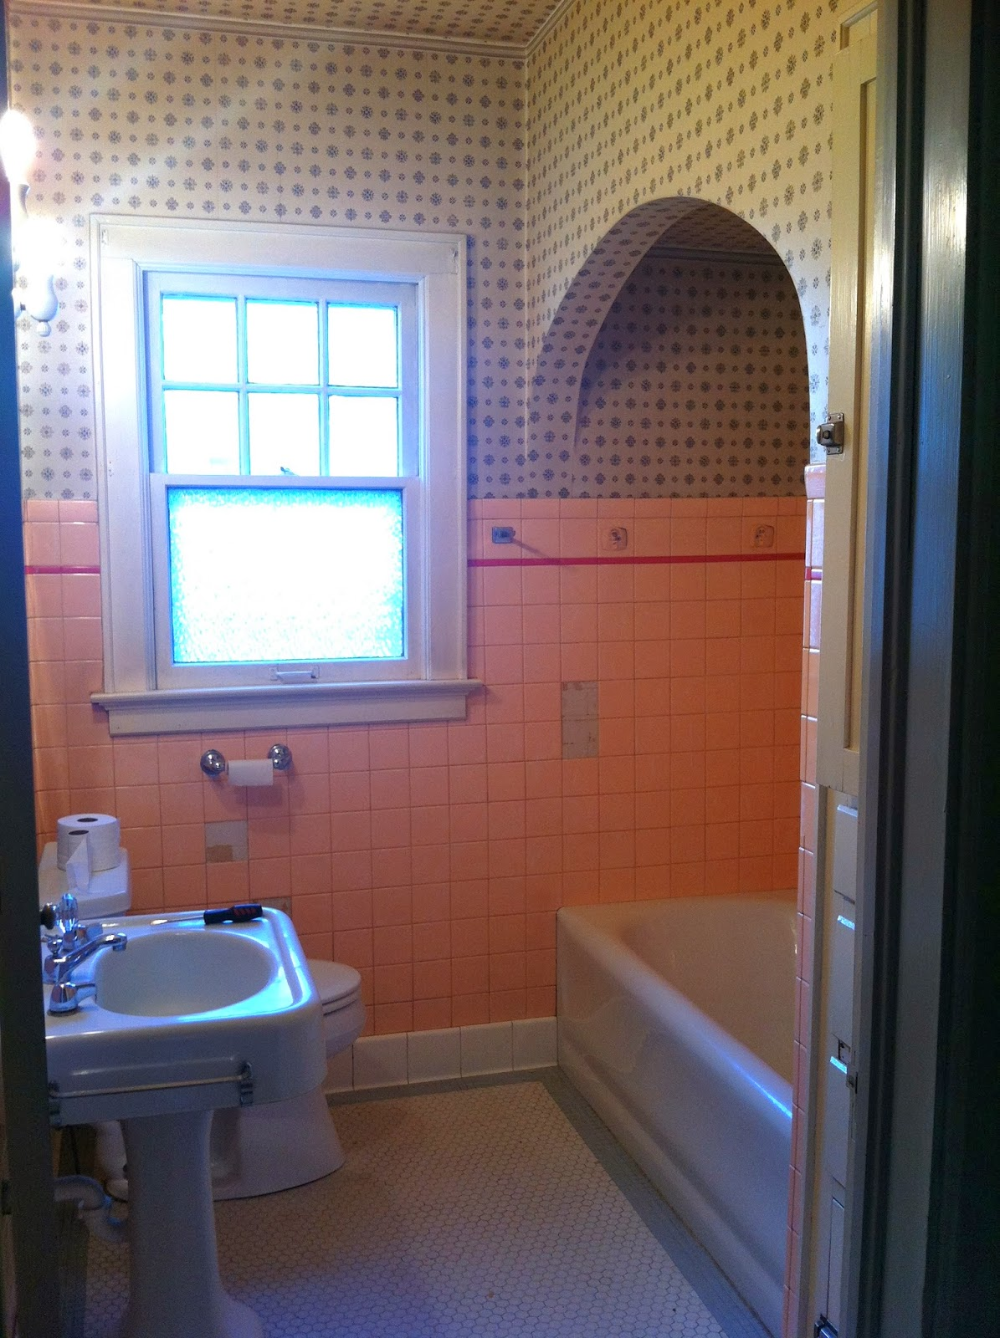 removing plastic tile from bathroom wall in 2020 ...